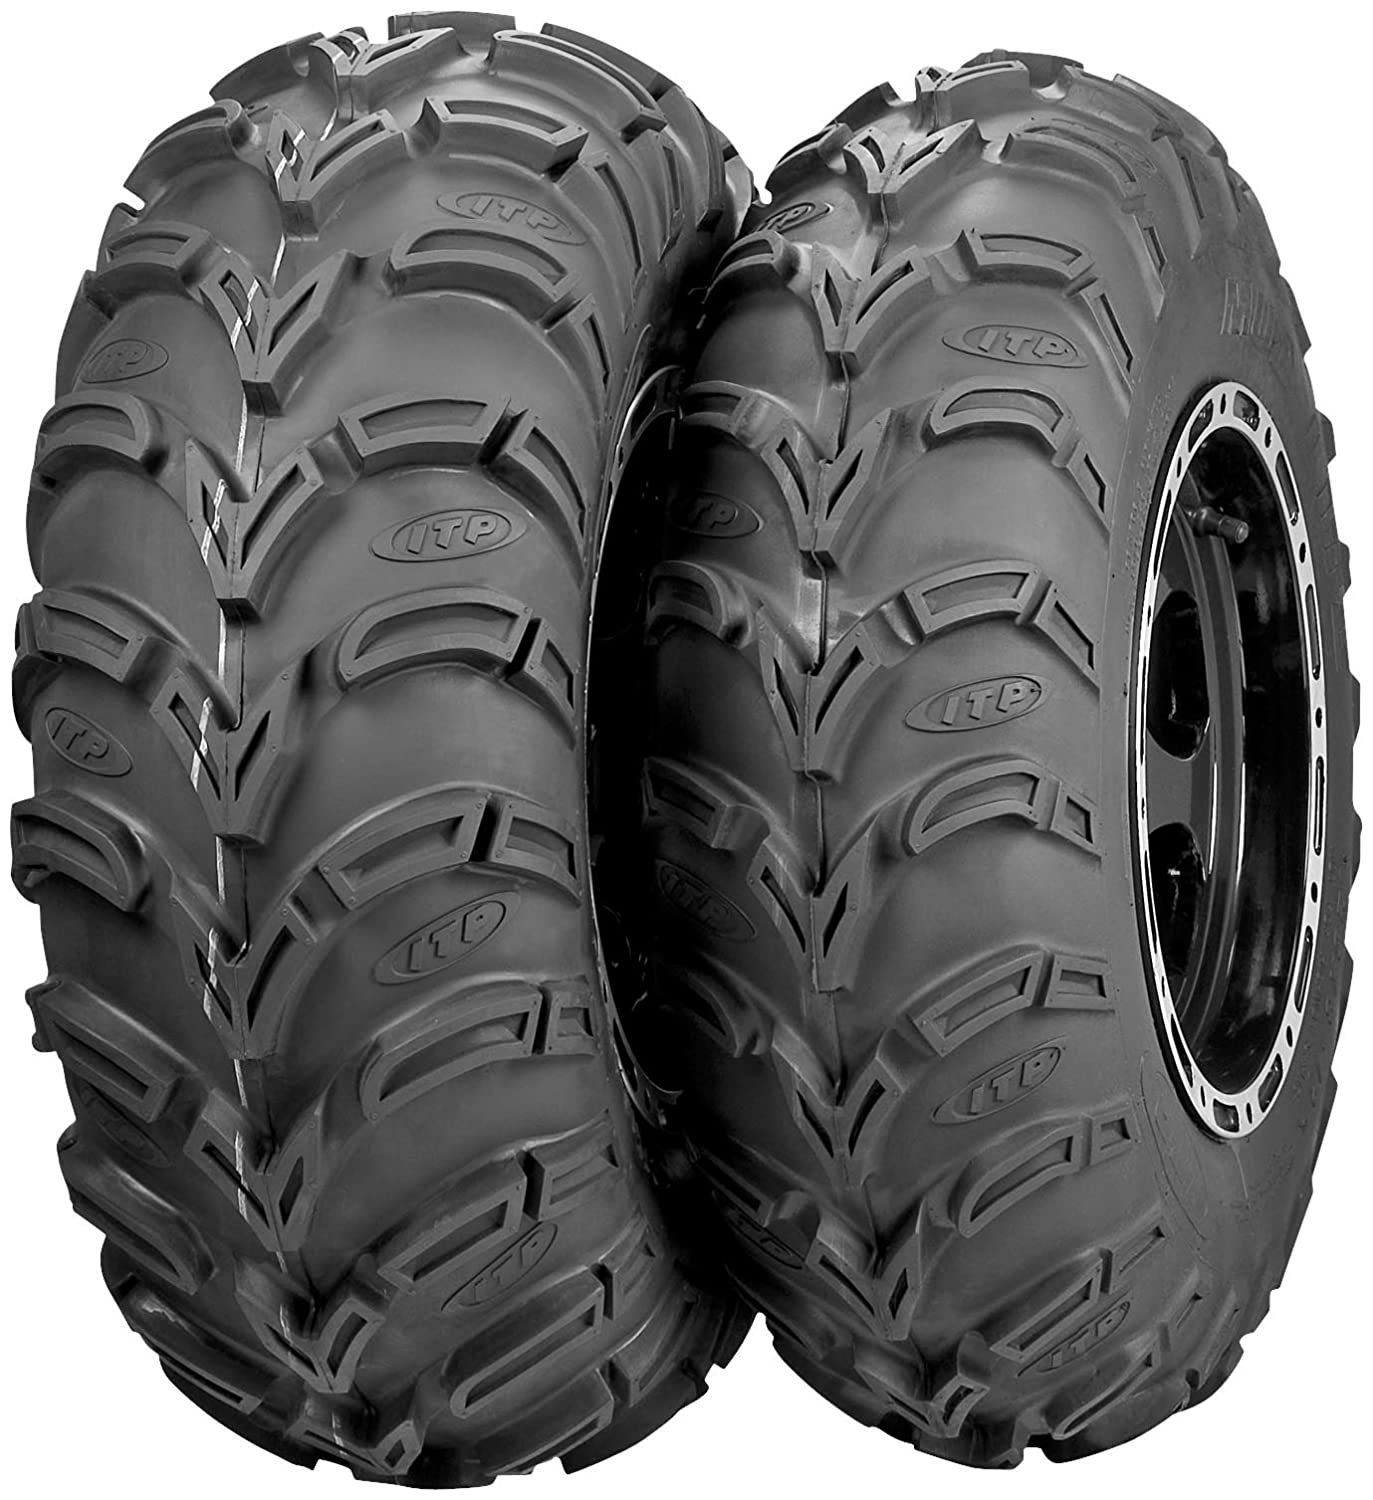 ITP Mud Lite AT Mud Terrain ATV Tire 24x10-11 56A328